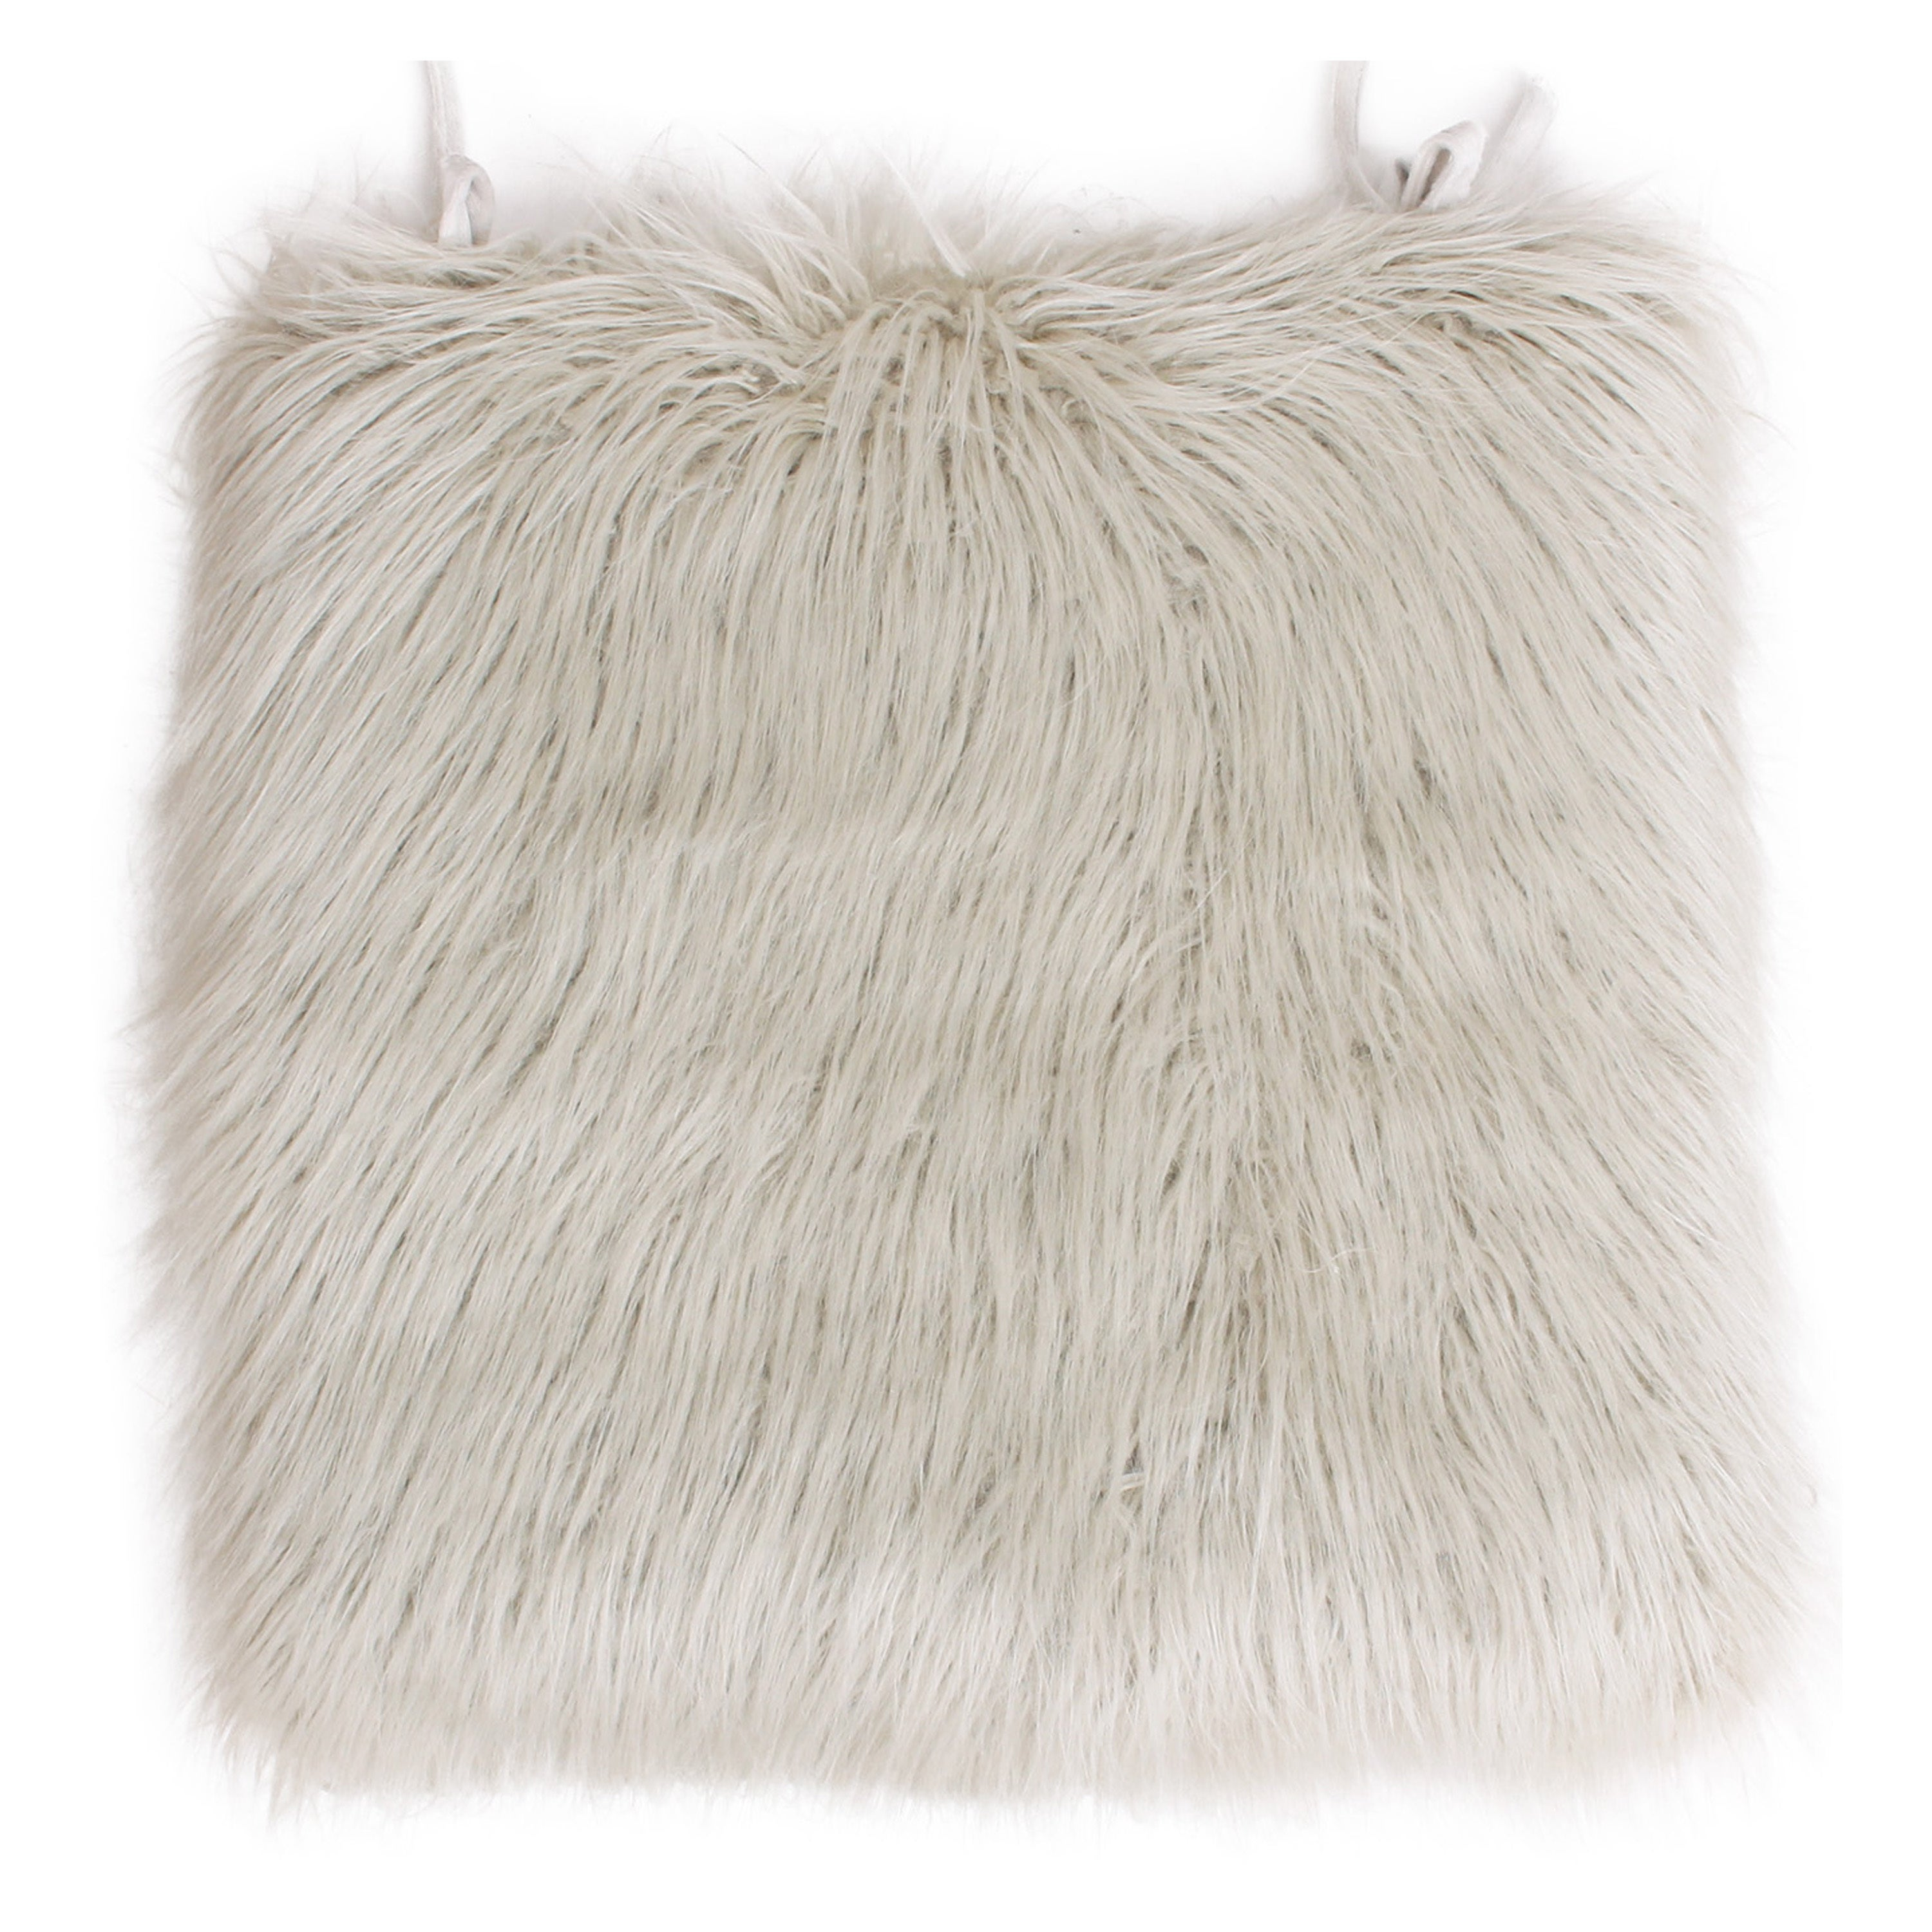 Bon Shop Thro By Marlo Lorenz Keller Faux Mongolian Fur Seat Cushion   Free  Shipping On Orders Over $45   Overstock.com   12875493